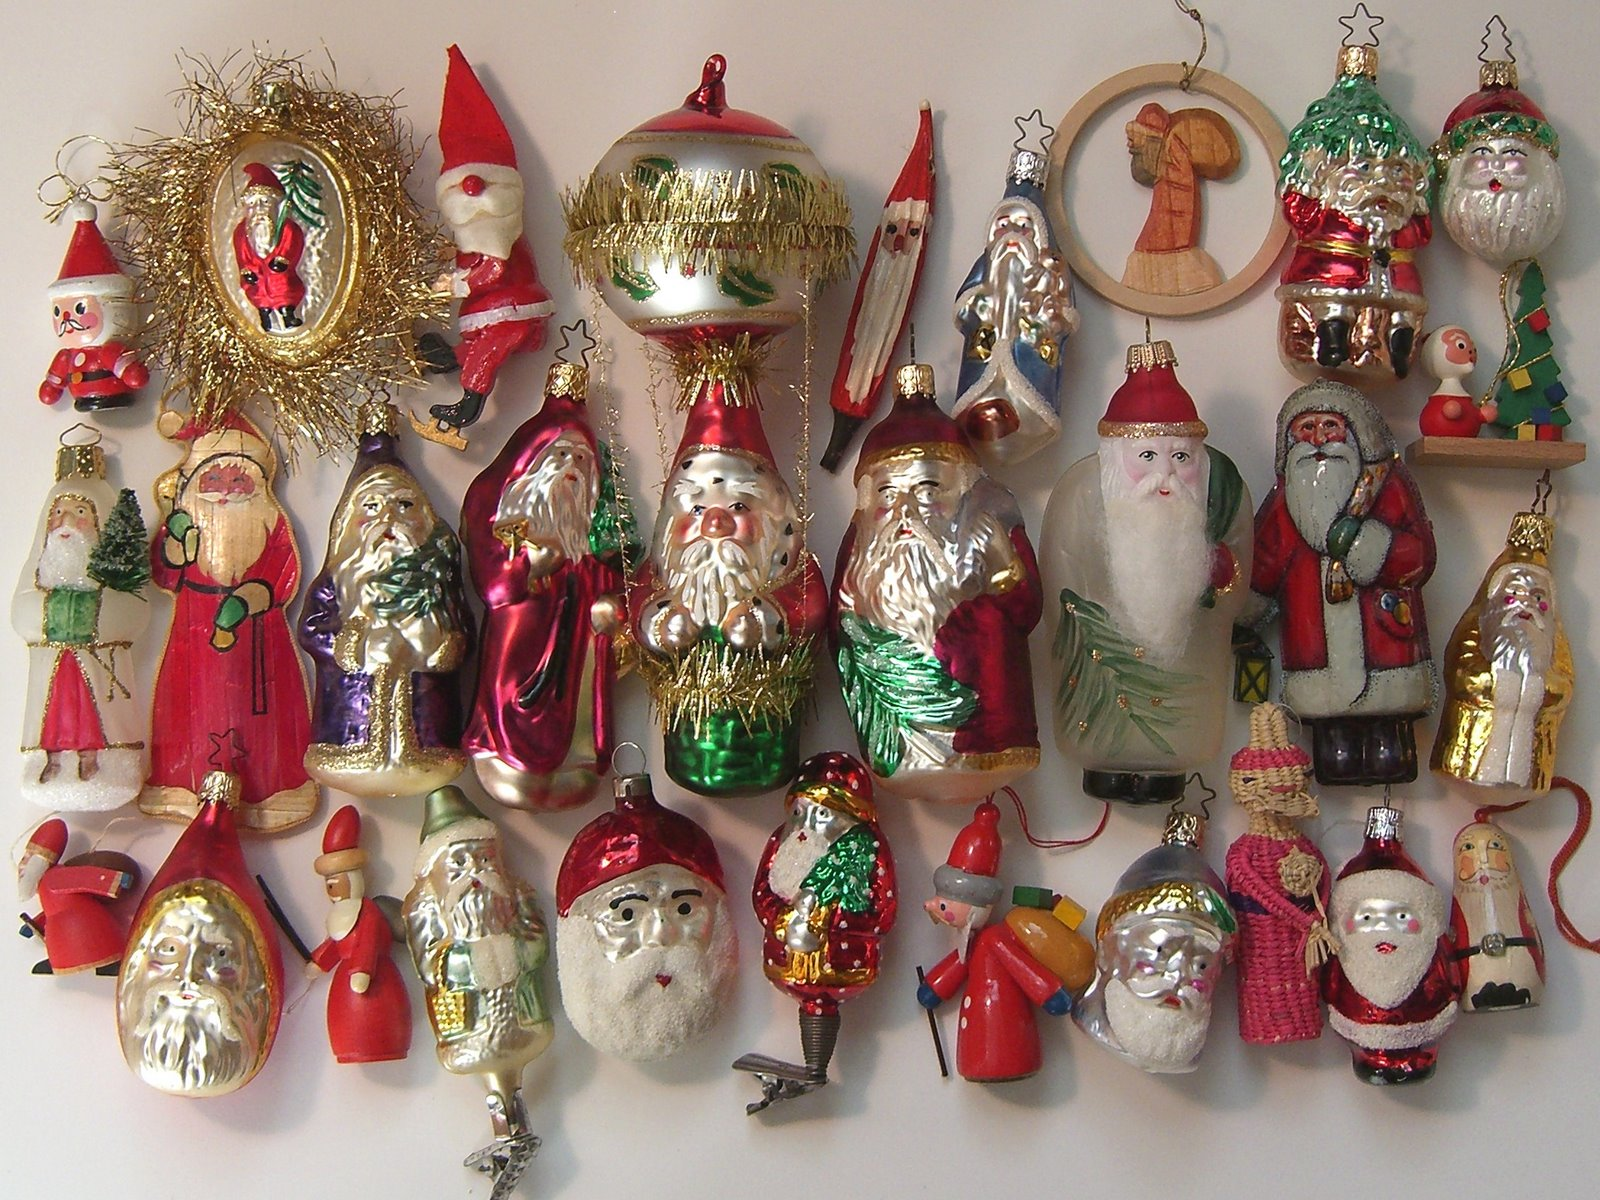 As An Unreformed Collector Christmas Ornaments Hold A Special Allurement Unwrapping Each One Is